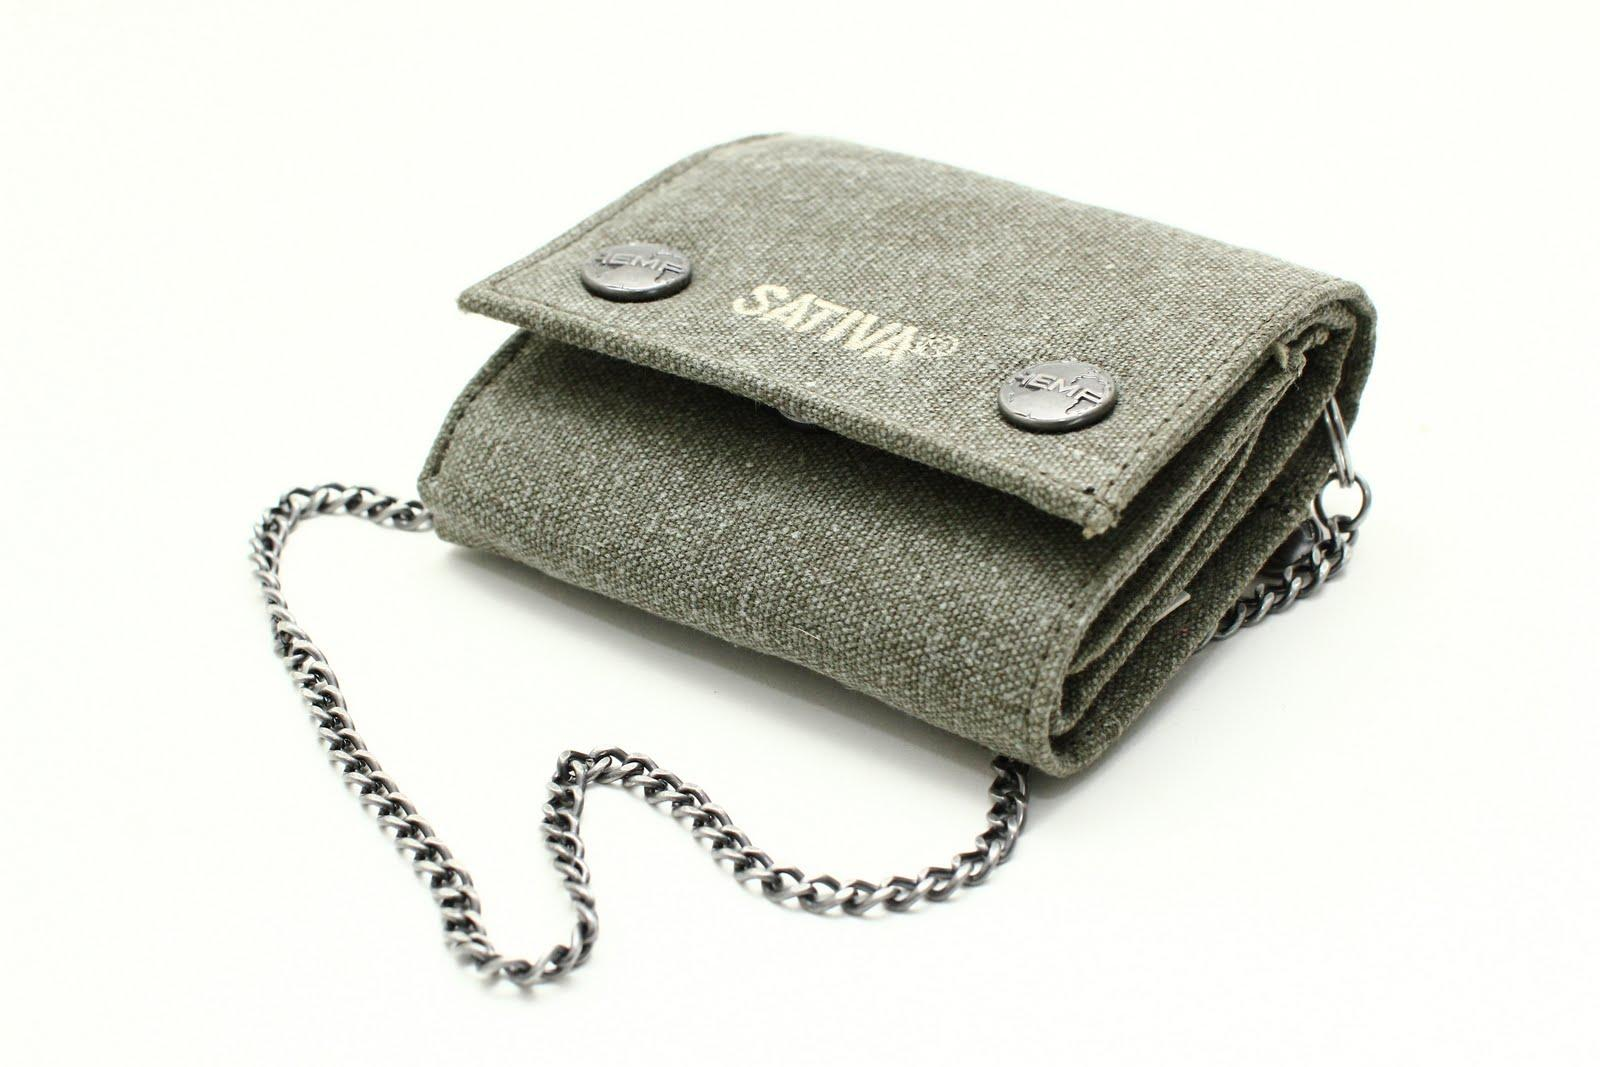 Hemp Wallet with Chian